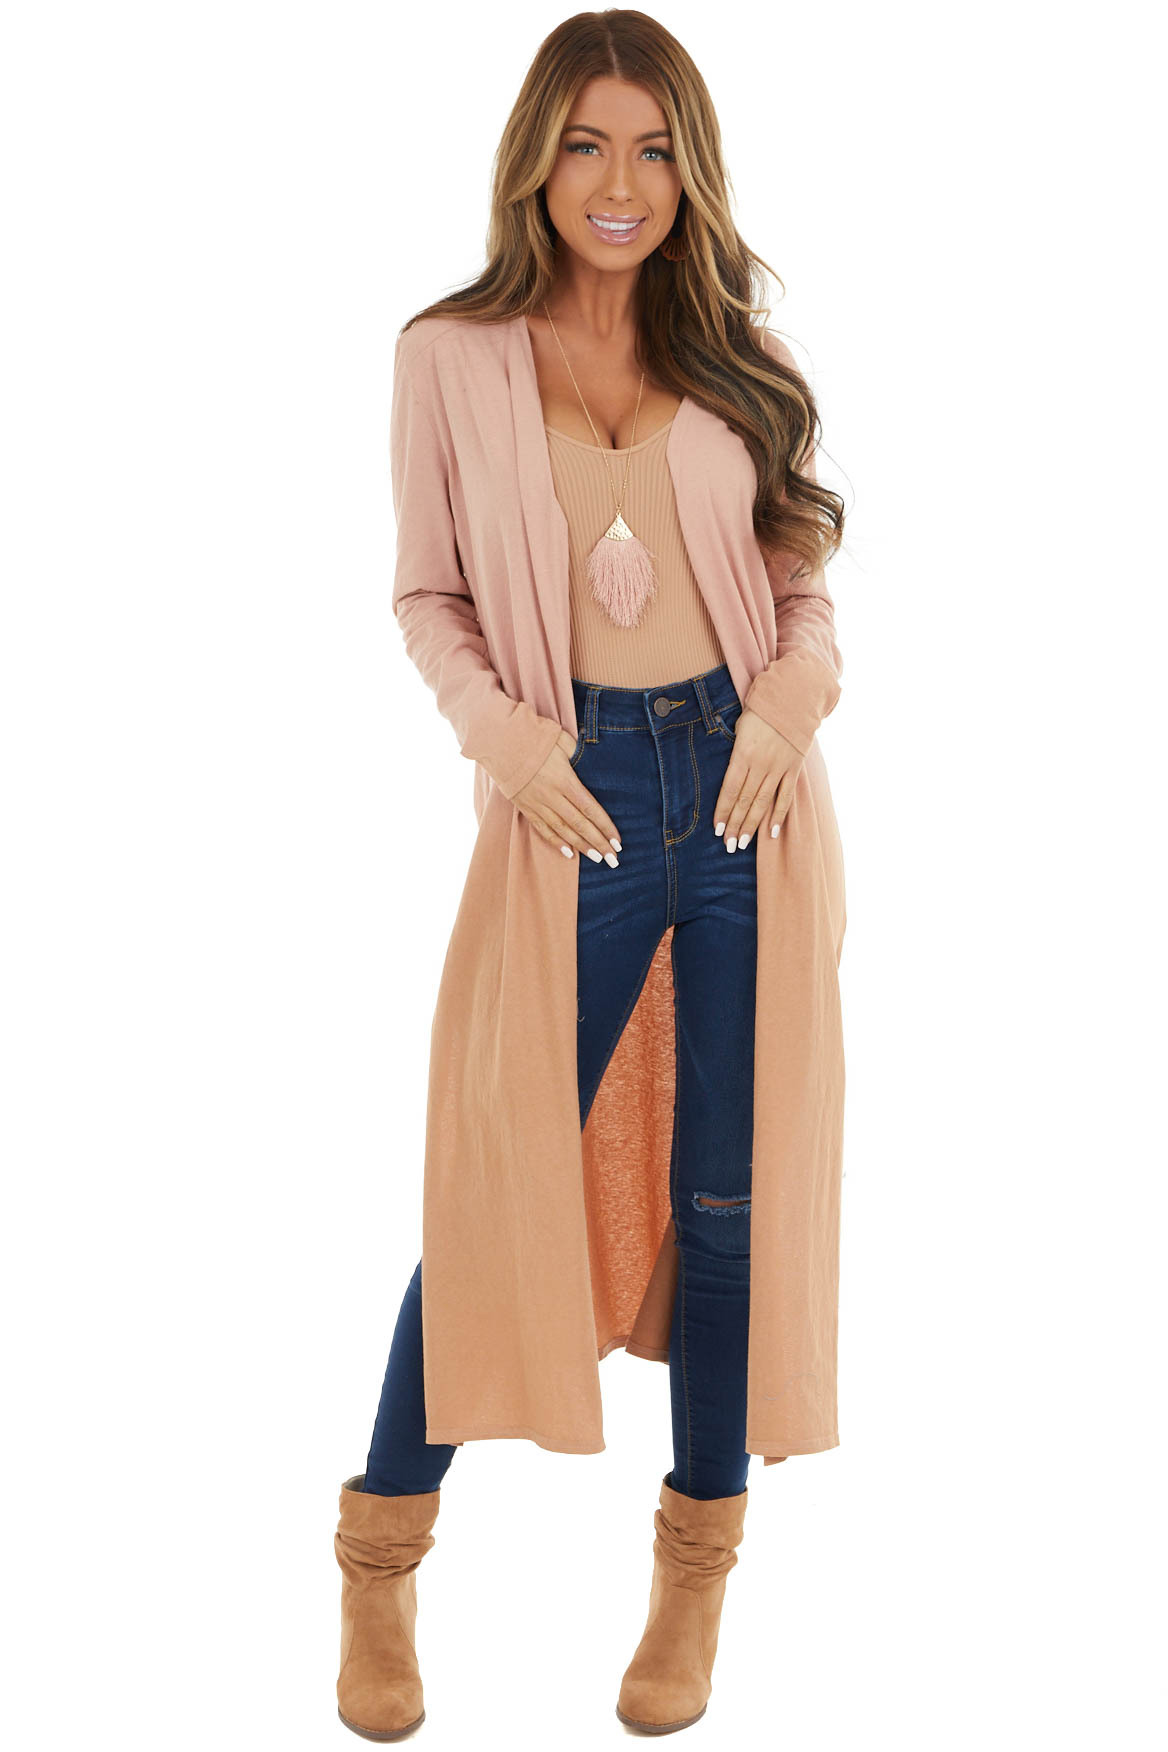 Dusty Blush and Salmon Ombre Long Sleeve Knit Cardigan